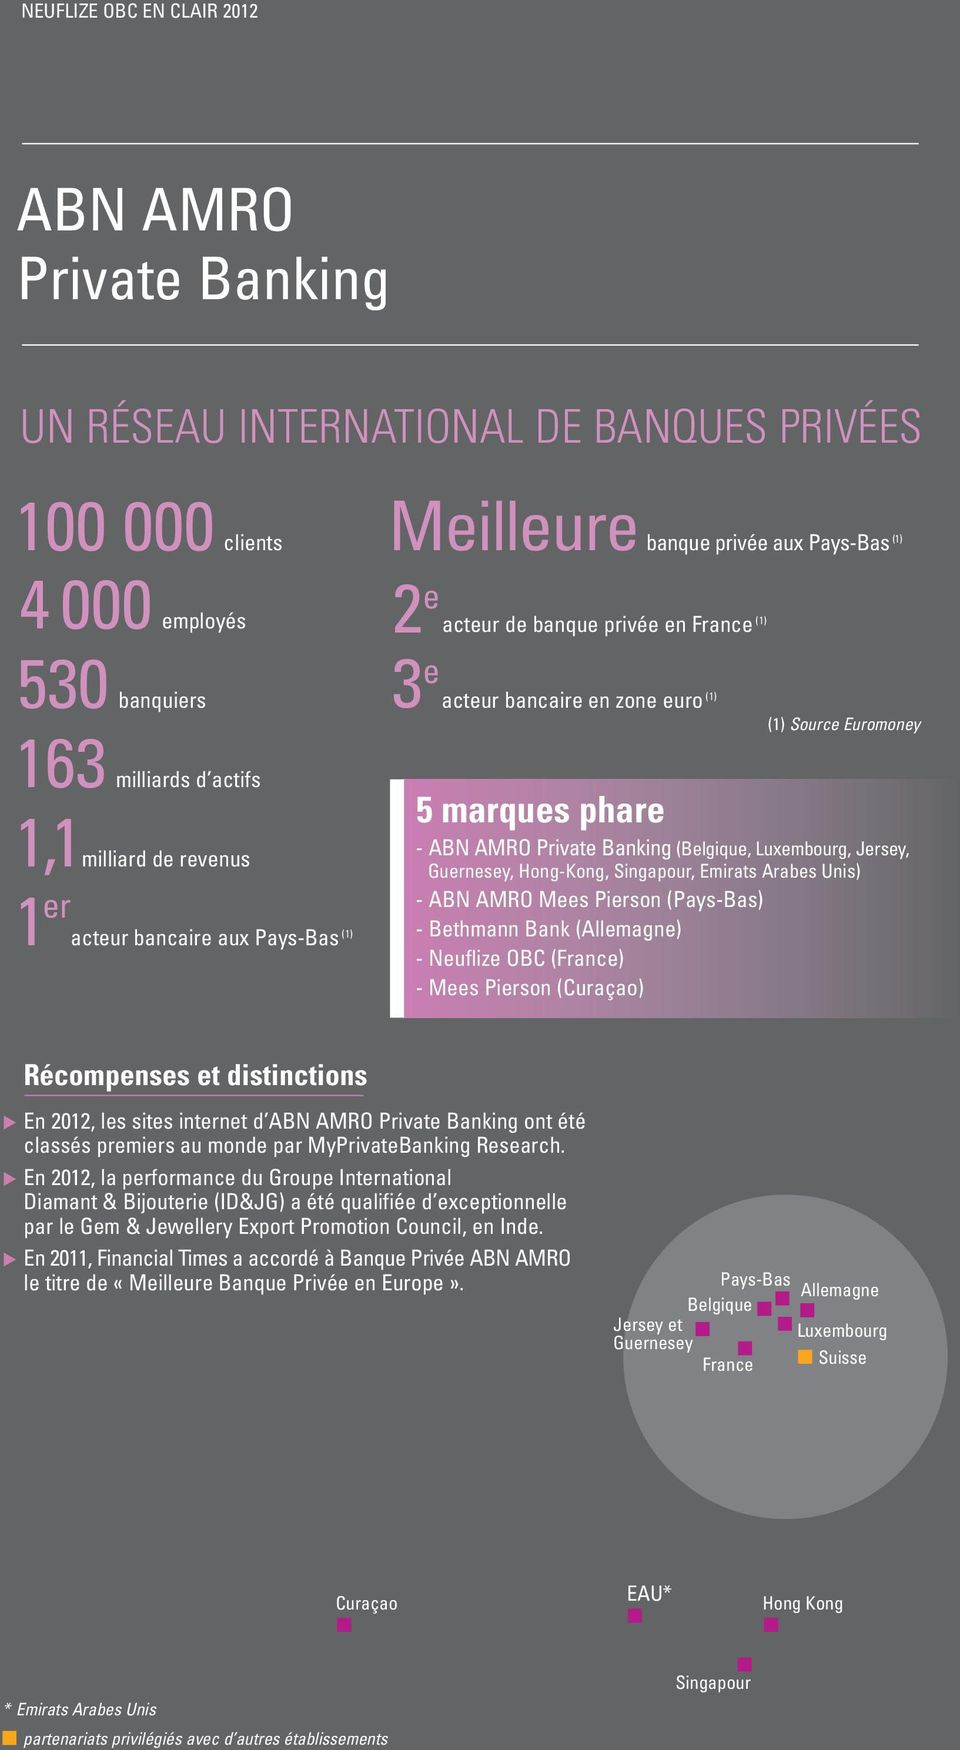 Luxembourg, Jersey, Guernesey, Hong-Kong, Singapour, Emirats Arabes Unis) - ABN AMRO Mees Pierson (Pays-Bas) - Bethmann Bank (Allemagne) - (France) - Mees Pierson (Curaçao) Récompenses et